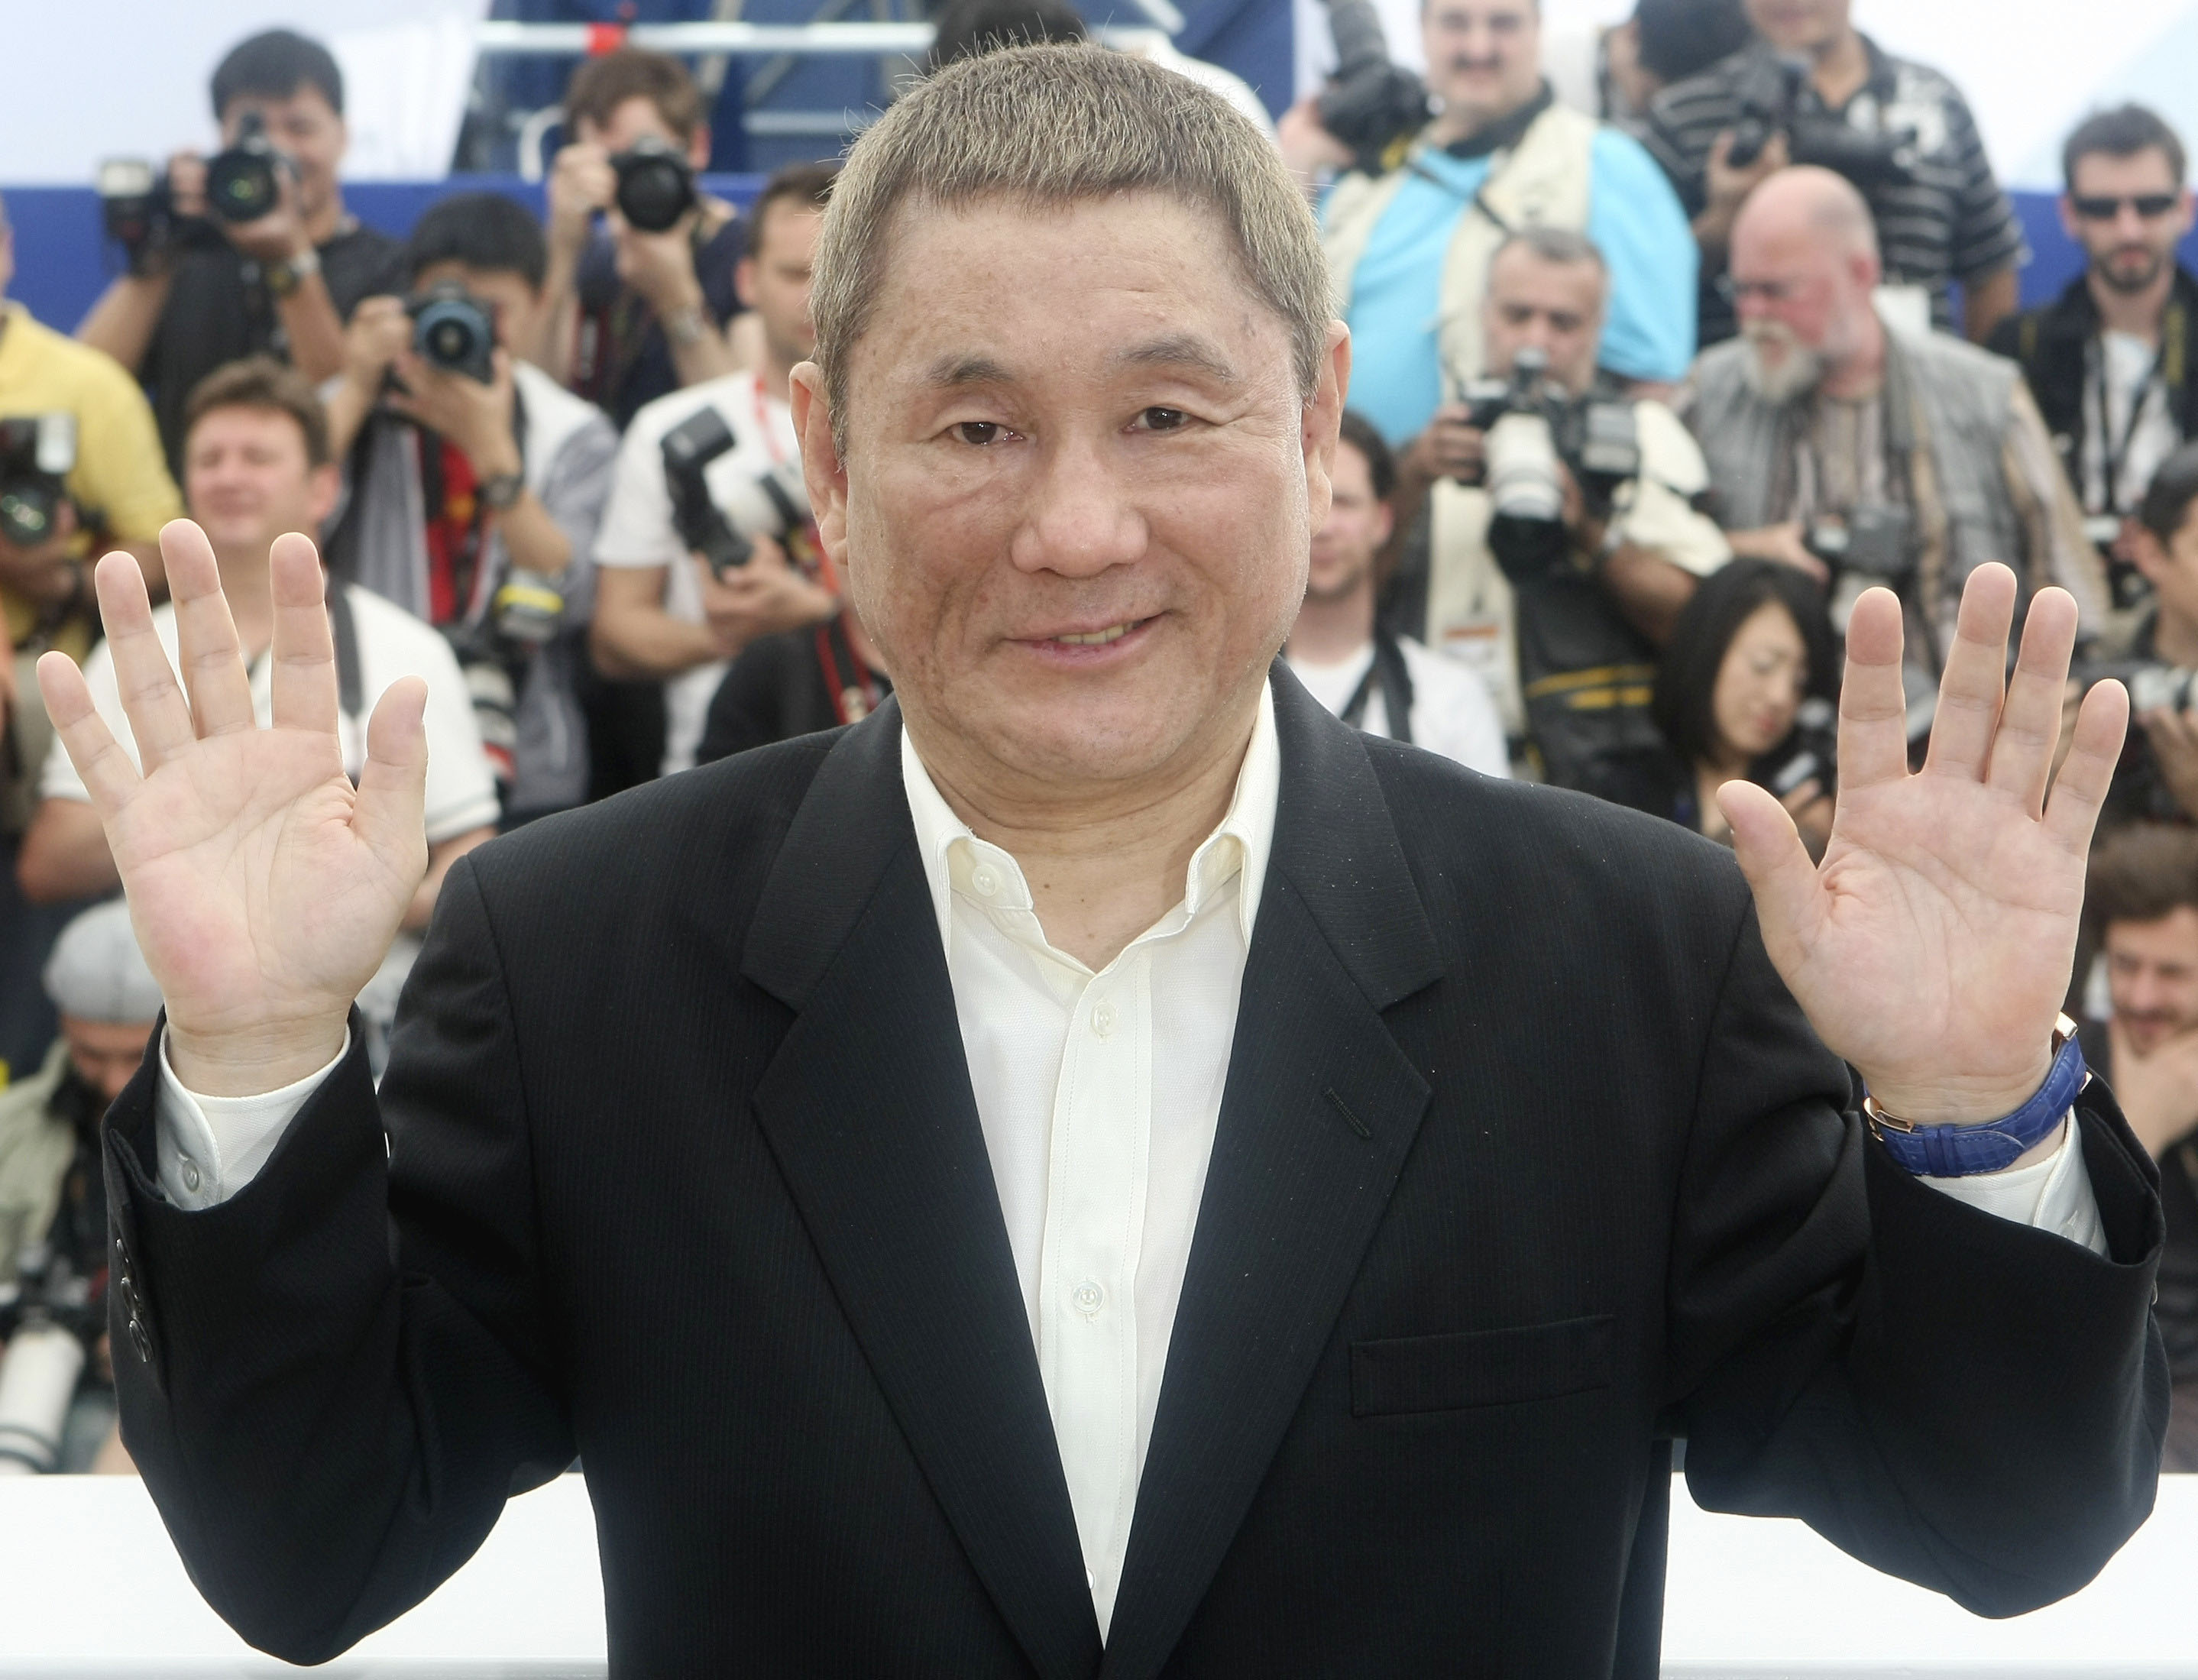 Out of hand: Insensitive comments about same-sex marriage by Takeshi Kitano, seen here at the 2010 Cannes Film Festival in France, have been picked up by the international media while being largely ignored in Japan.